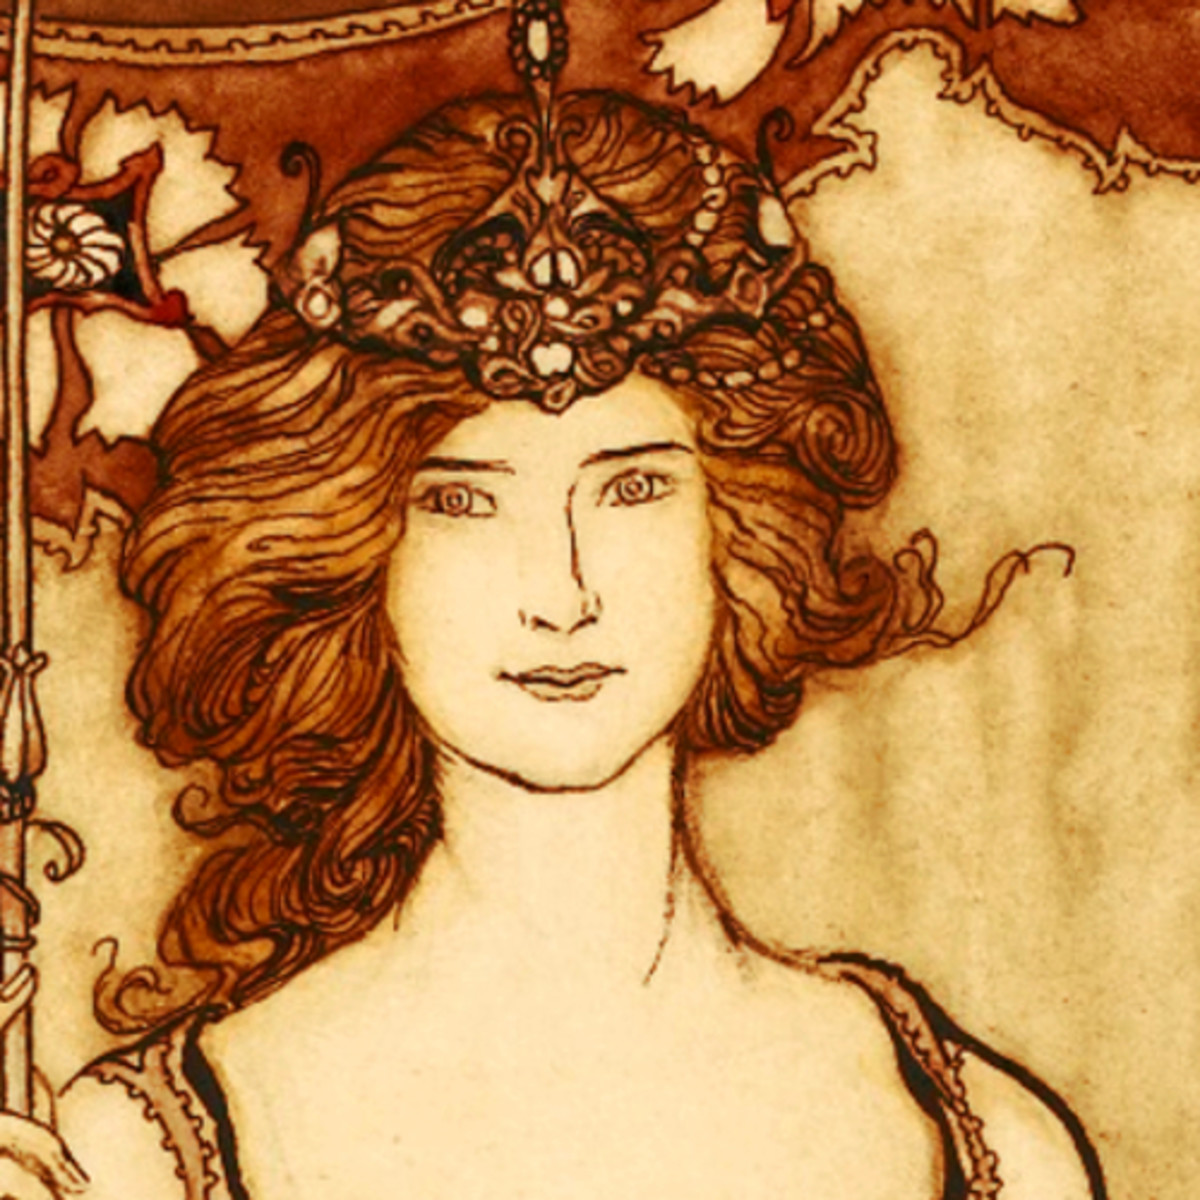 "Here we show a portion of 'Queen Mab, who rules in the Gardens' - it is from the suite by Arthur Rackham published in ""Peter Pan in Kensington Gardens"" (1906)."